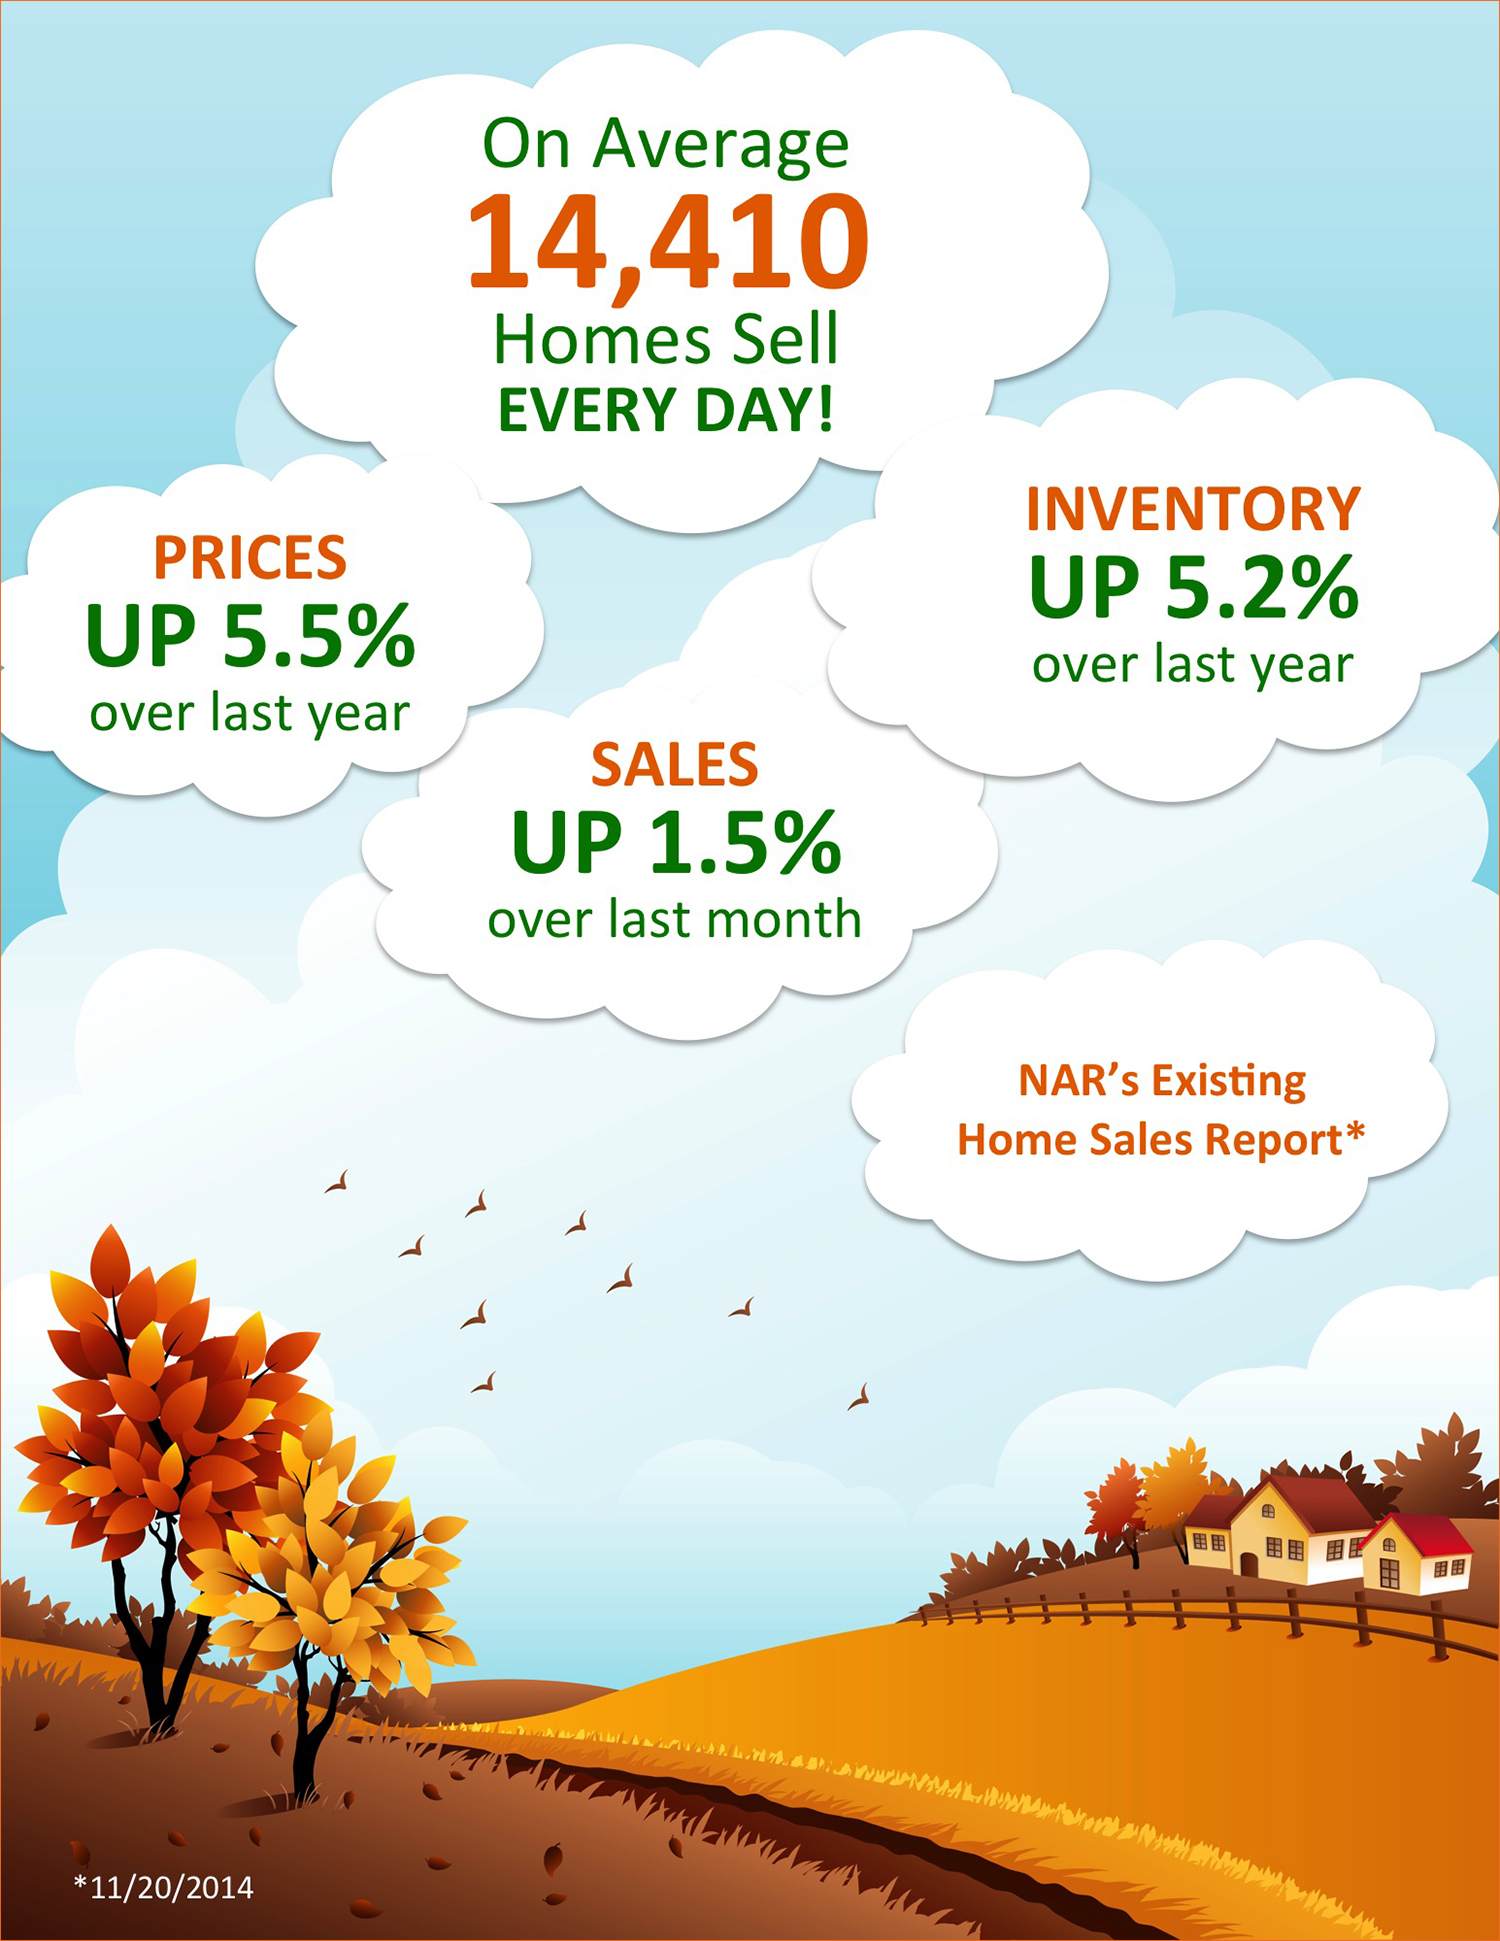 NAR's Existing Home Sales Report [INFOGRAPHIC] | Simplifying The Market